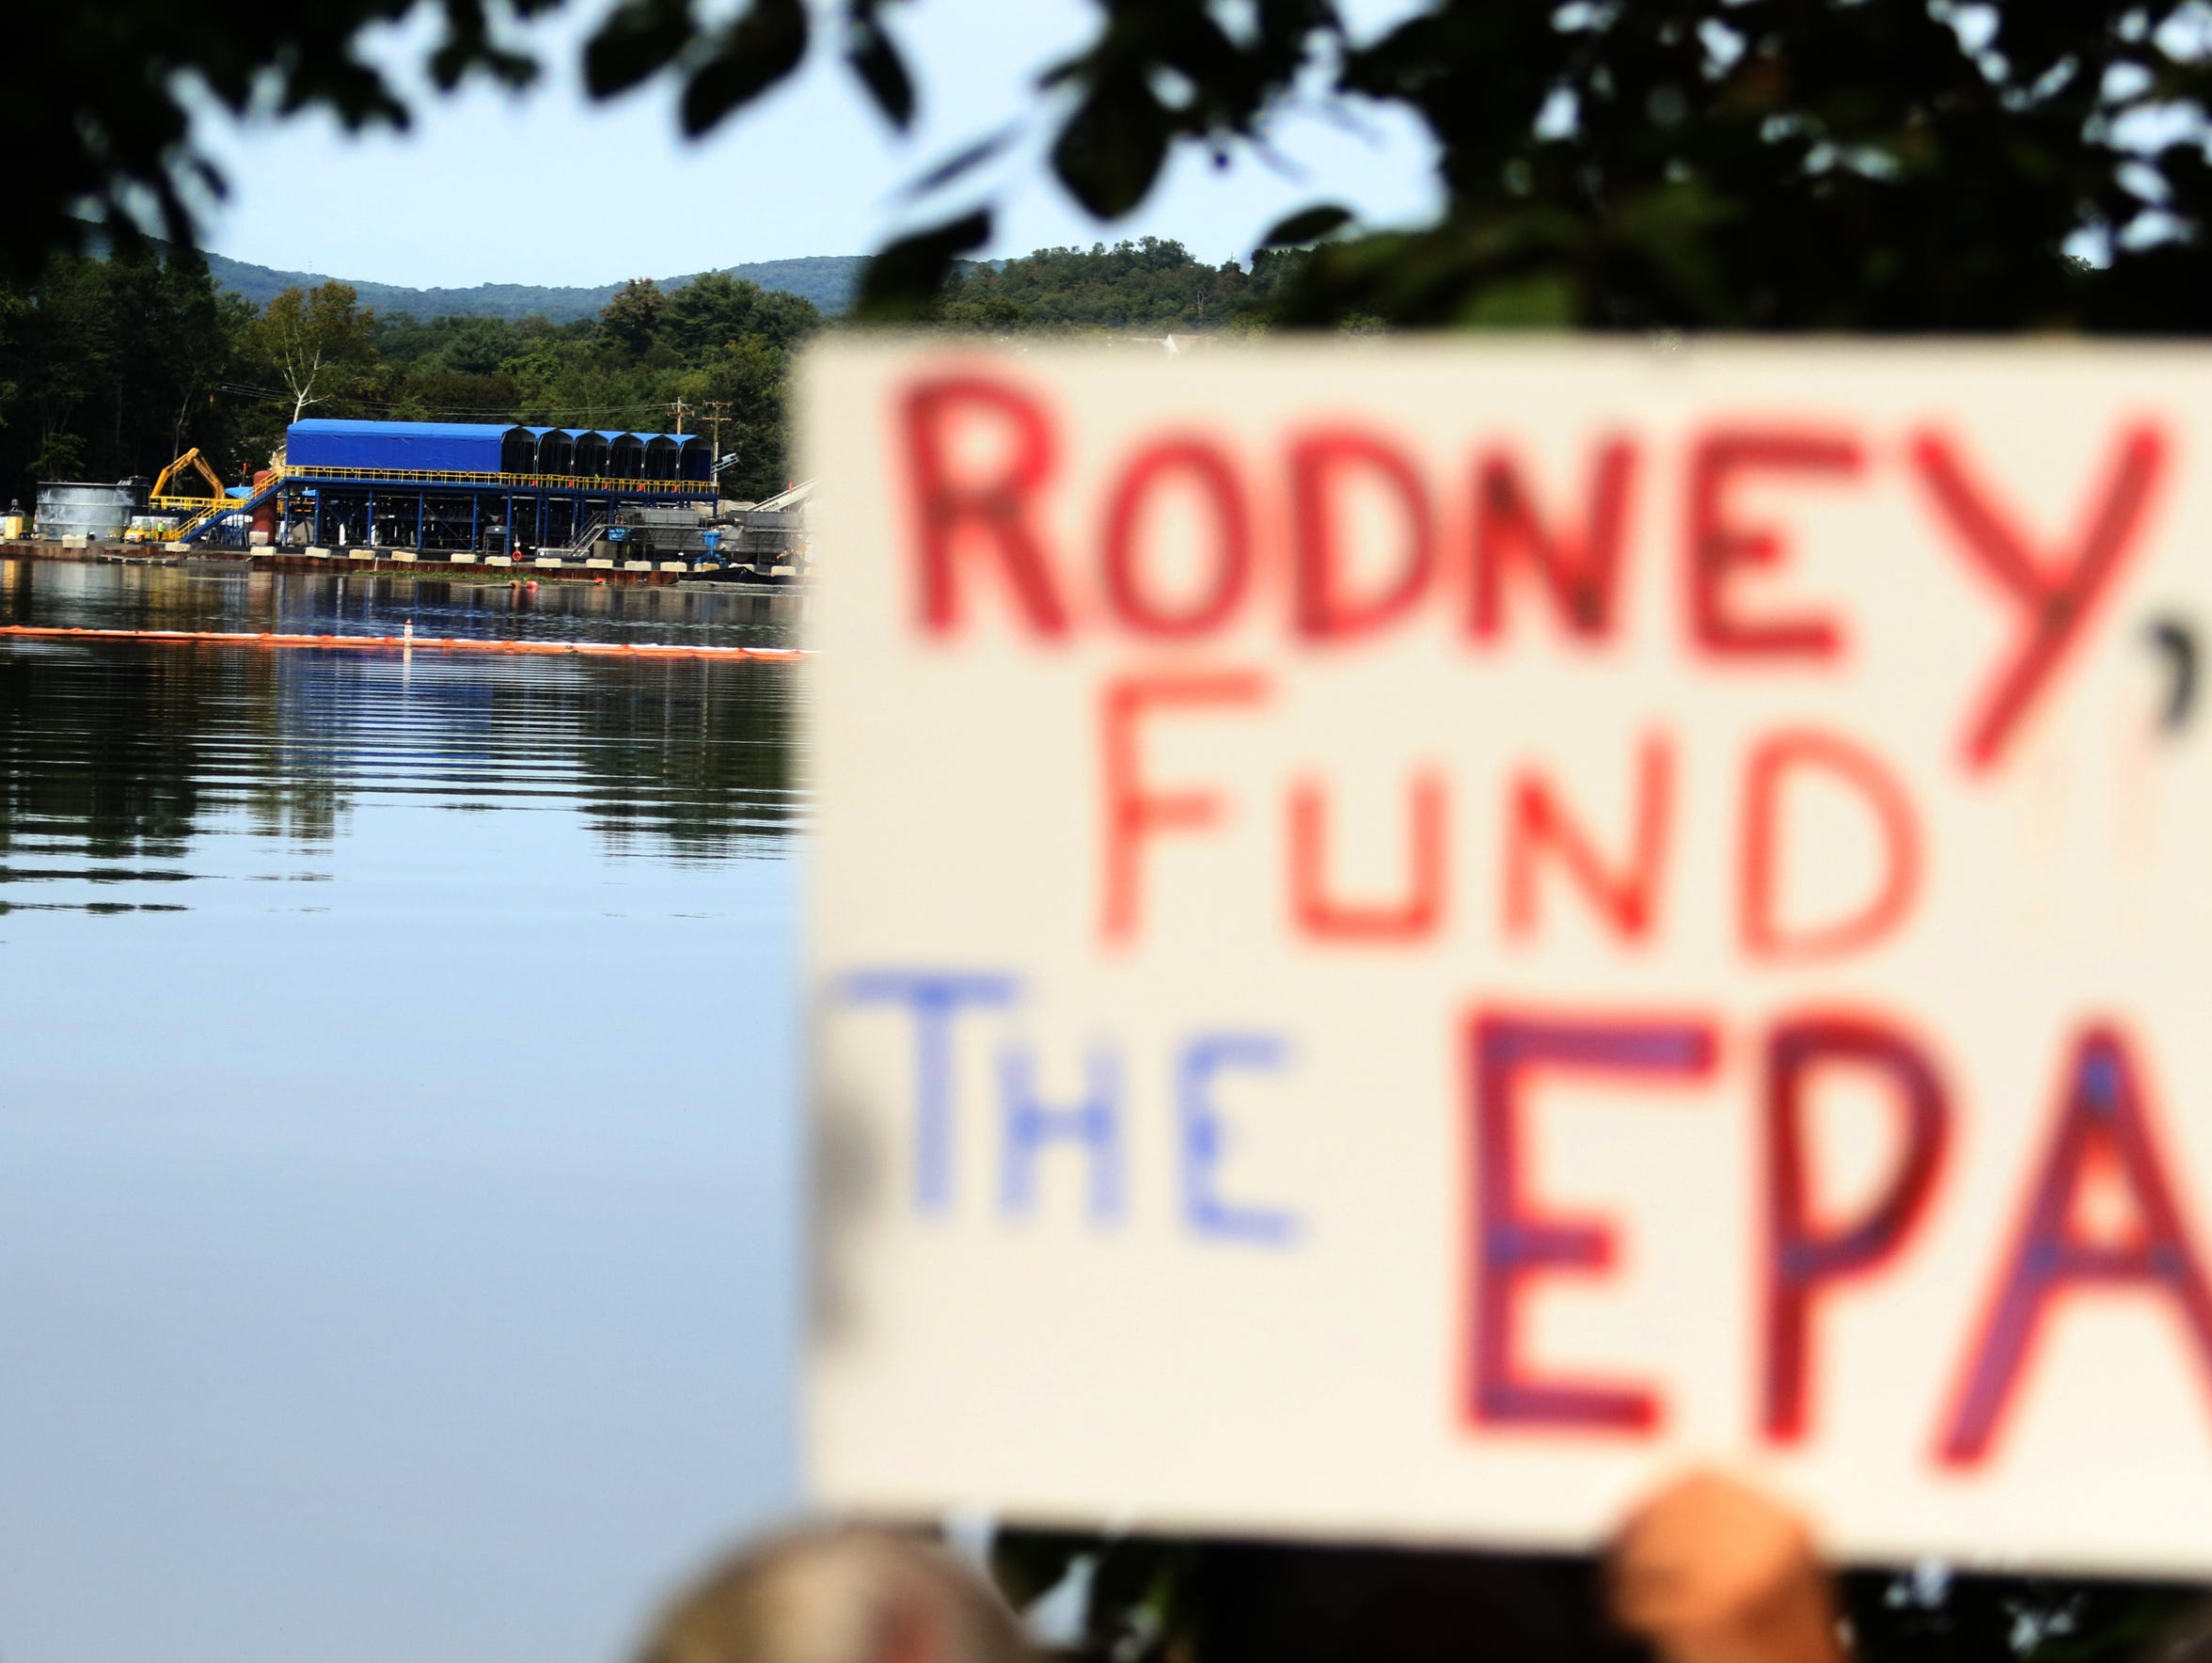 Citizens and environmental lobbyists get together and protest the lack of a response from Congressman Rodney Felinghuysen to naming the area of Pompton Lakes contaminated by the DuPont Company a Superfund site in 2017.